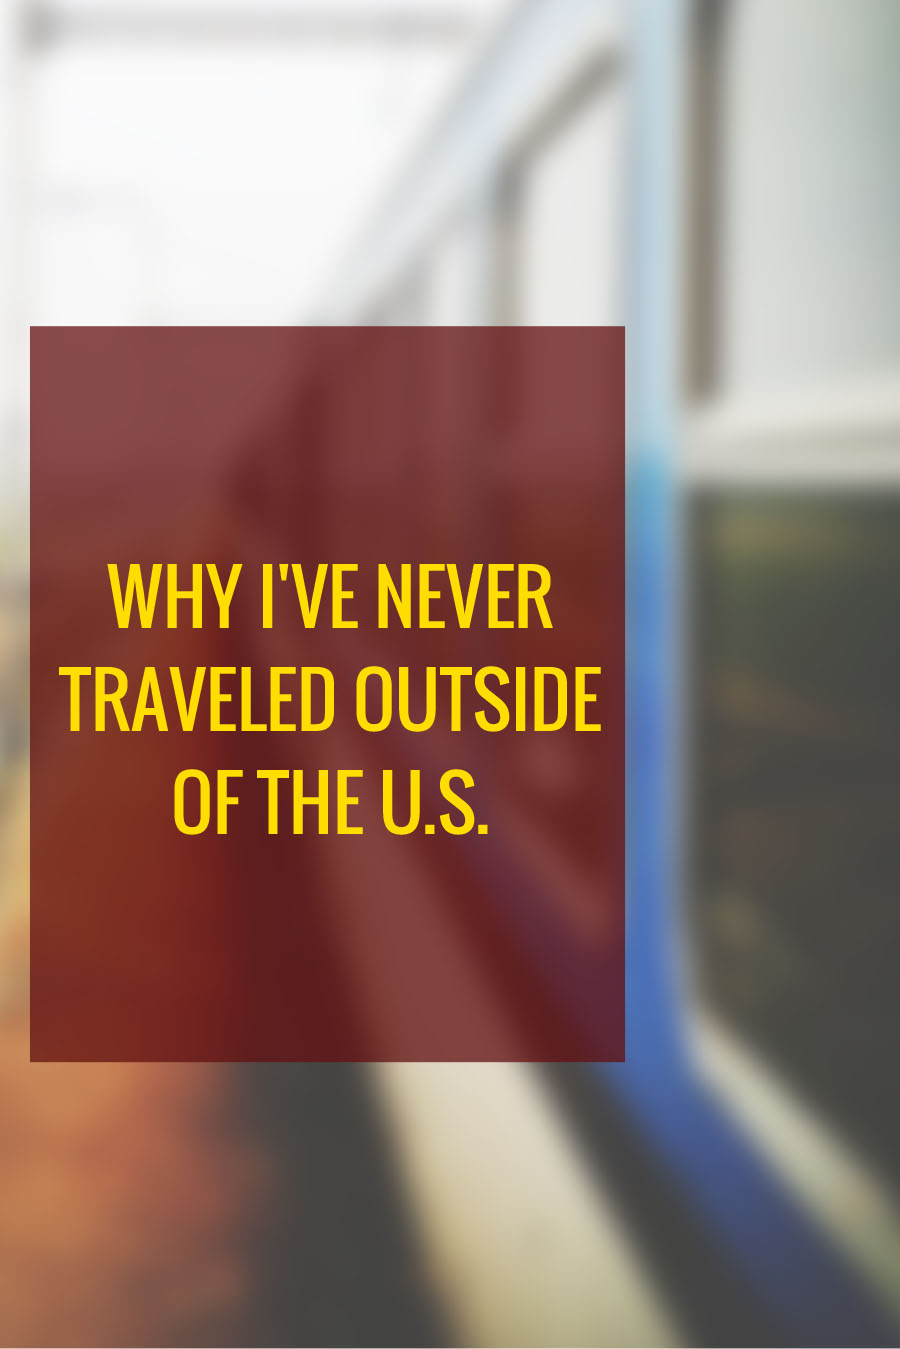 Why I've Never Traveled Outside of the U.S.